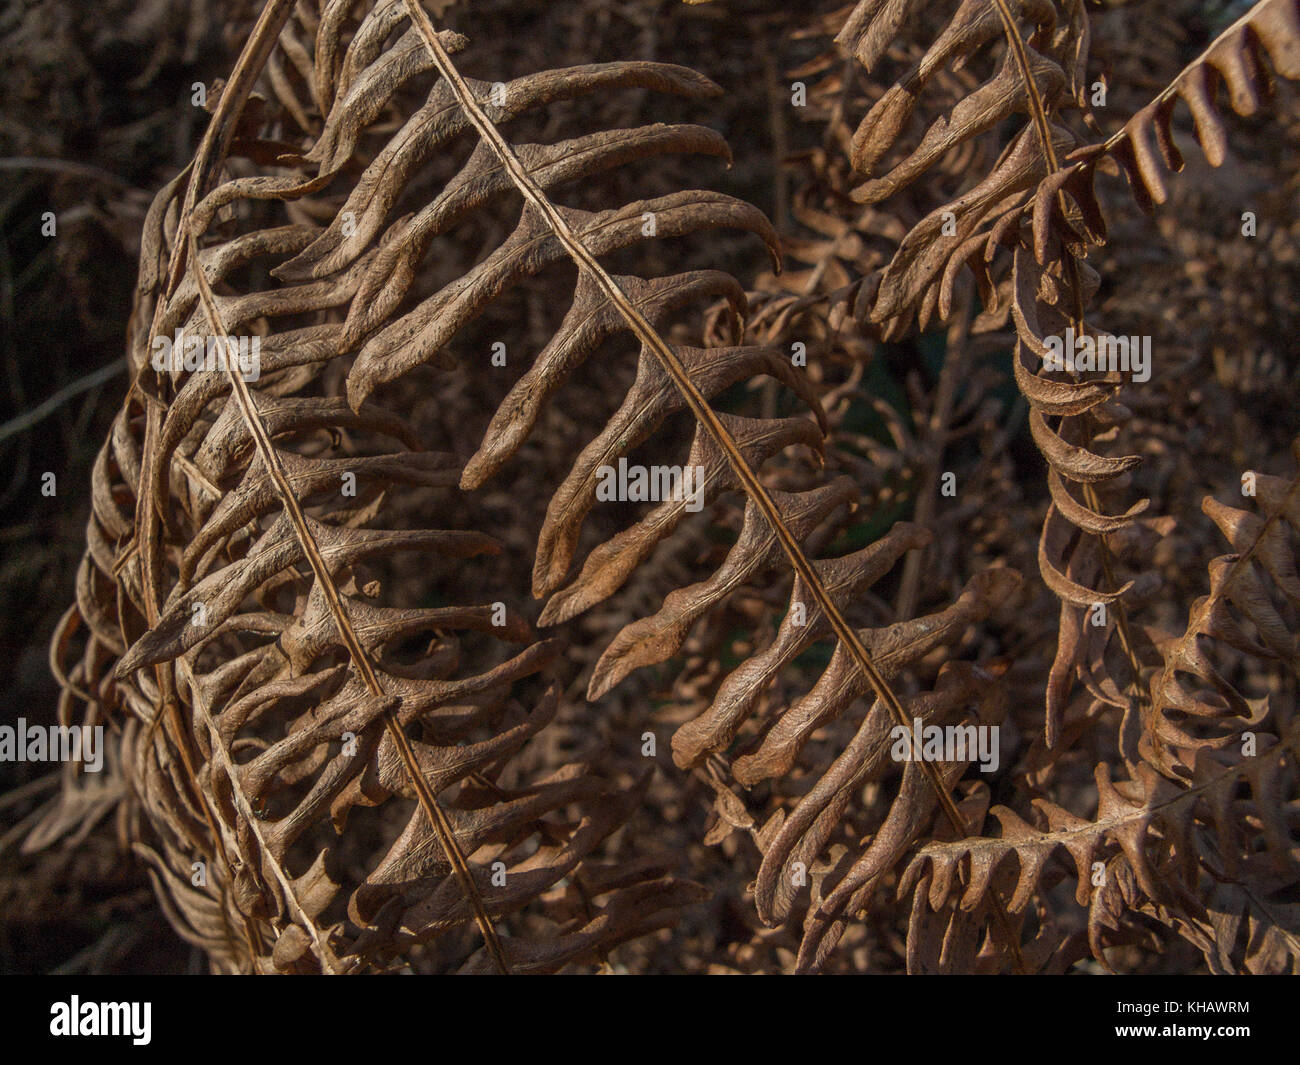 Autumnal foliage of an unidentified fern species in a Cornish hedgerow. - Stock Image